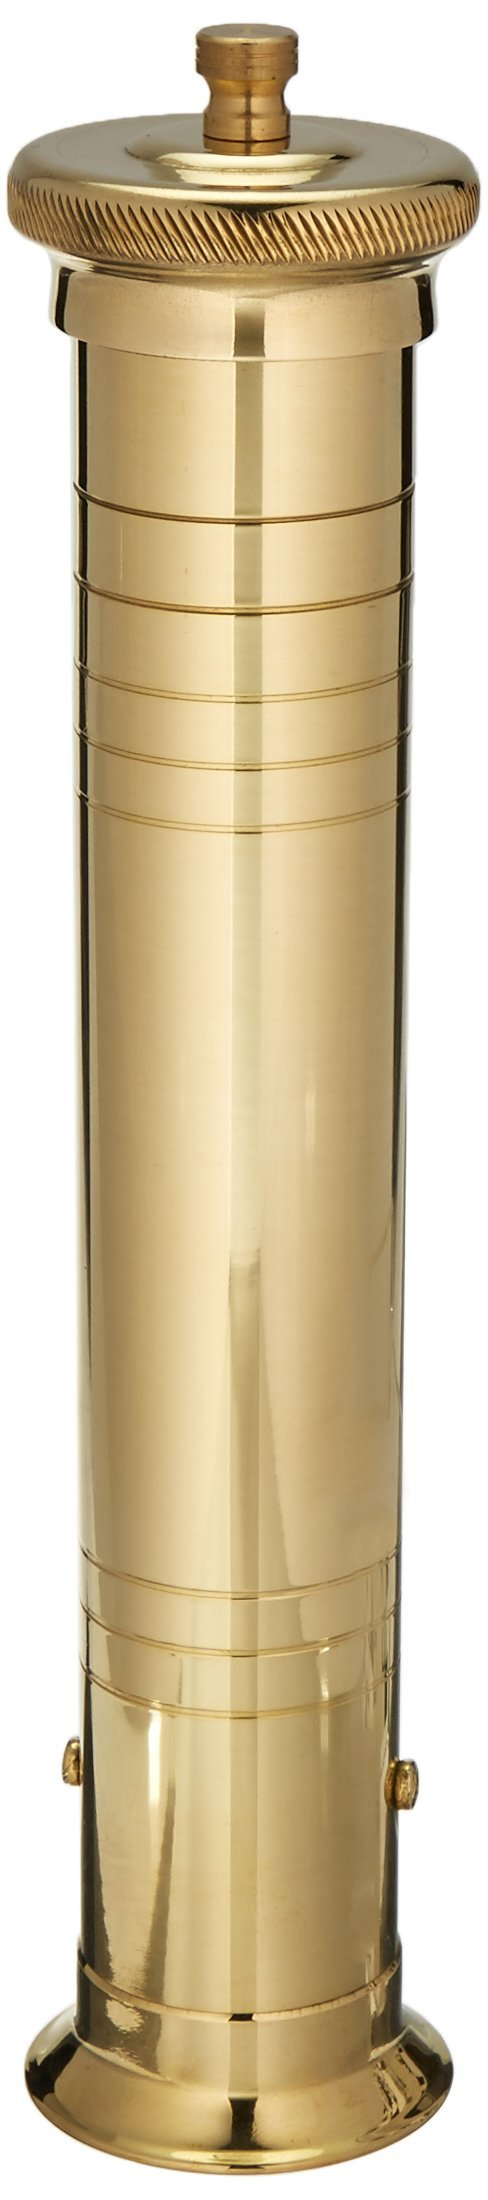 Pepper Mill Imports Maître d' Pepper Mill, Brass, 12'' by Pepper Mill Imports